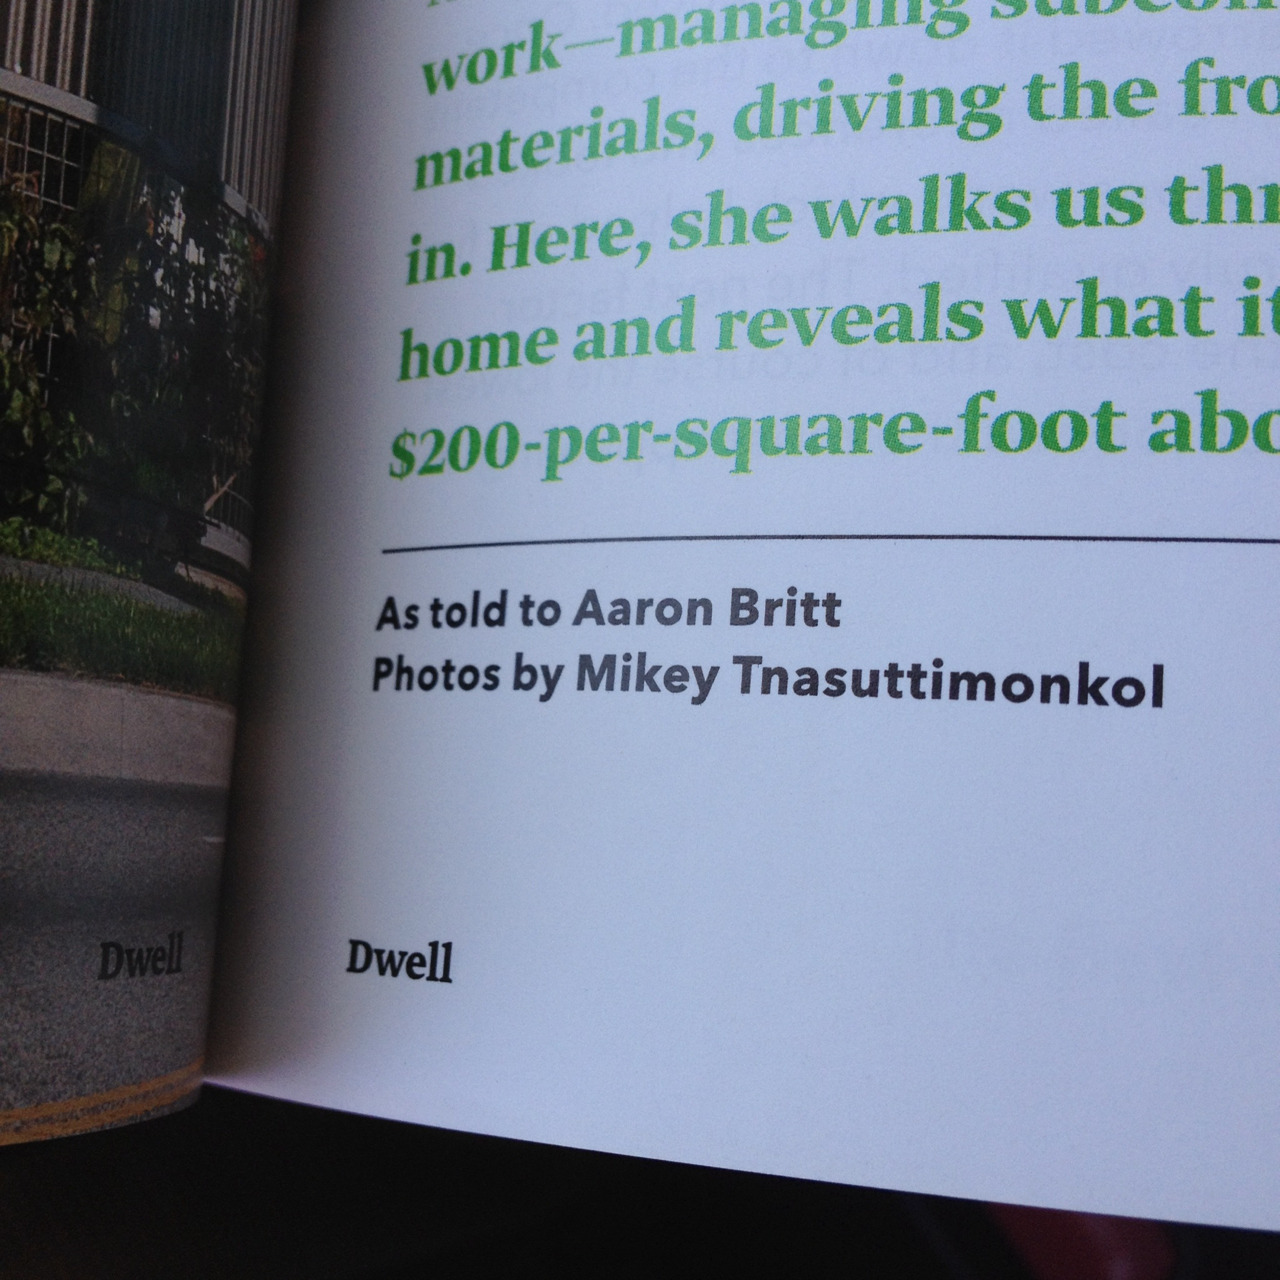 I have some shots in this months issue of Dwell (July/August). I'll have some tear sheets to post here soon!